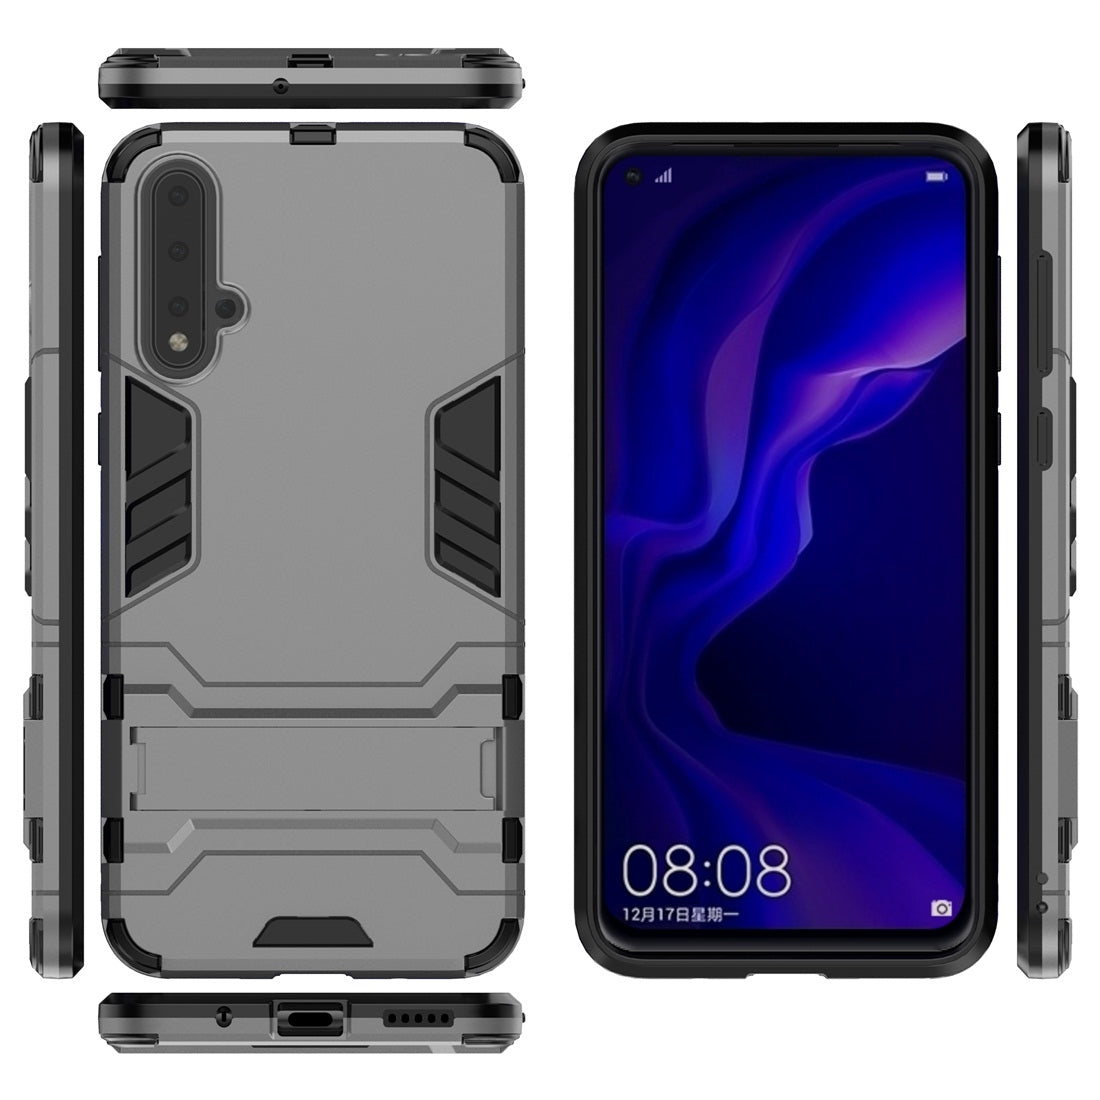 For Huawei Nova 5 / Nova 5 Pro Shockproof PC + TPU Protective Case with Invisible Holder(Grey)